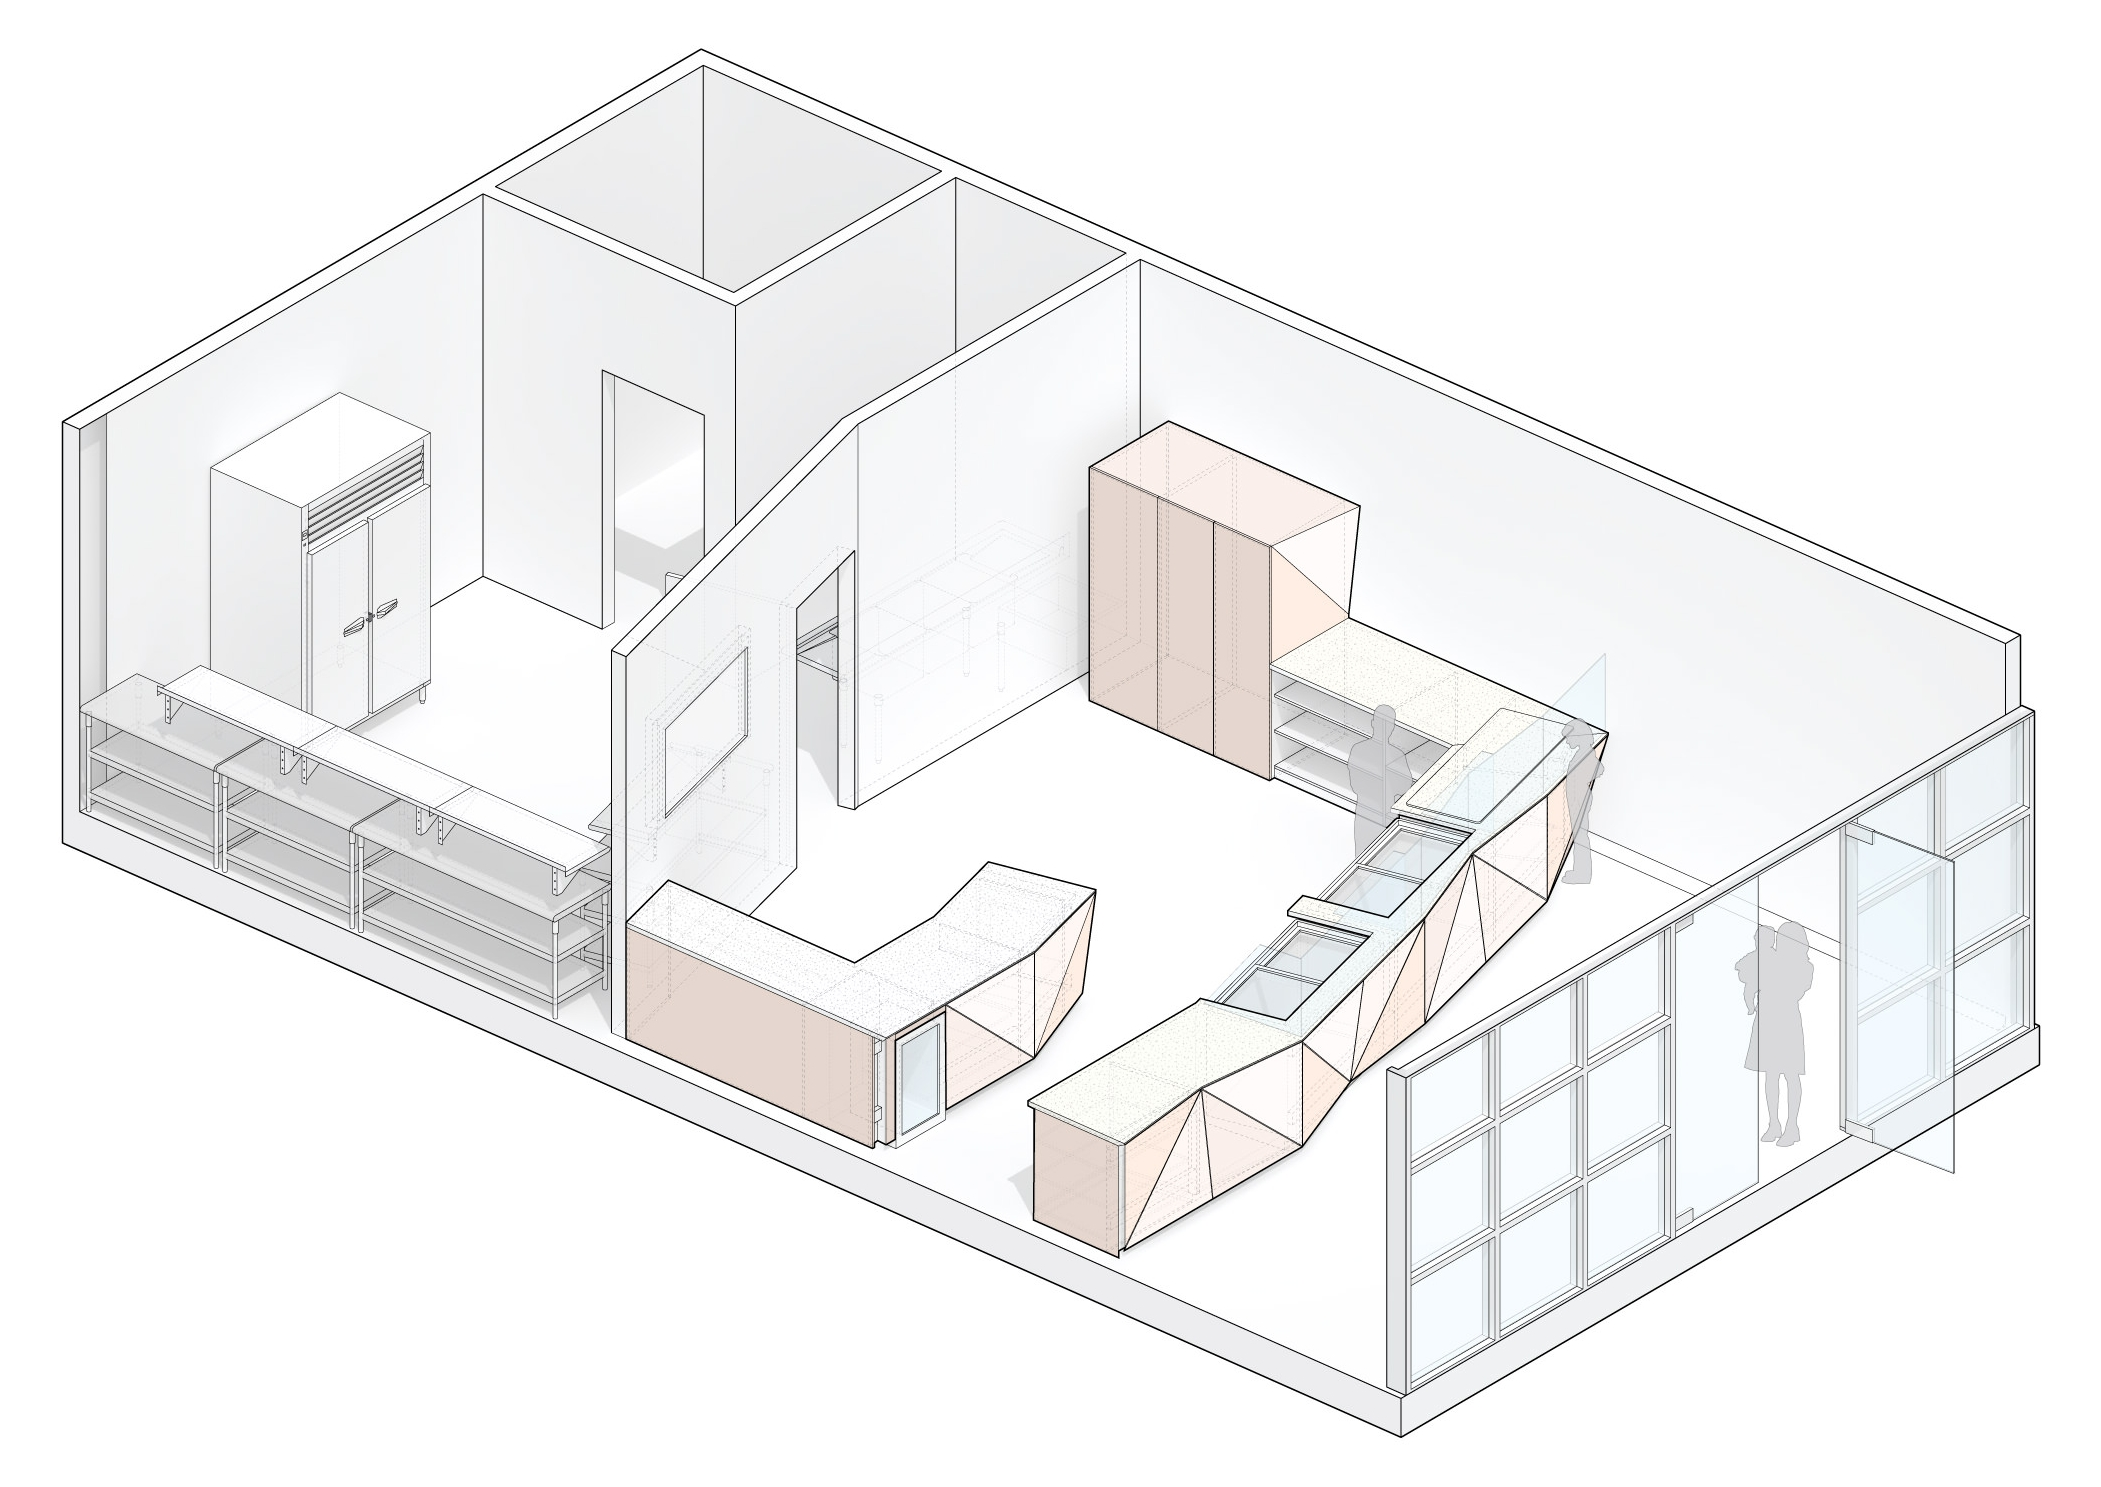 Isometric drawing showing the service counter and the prep kitchen in the back.